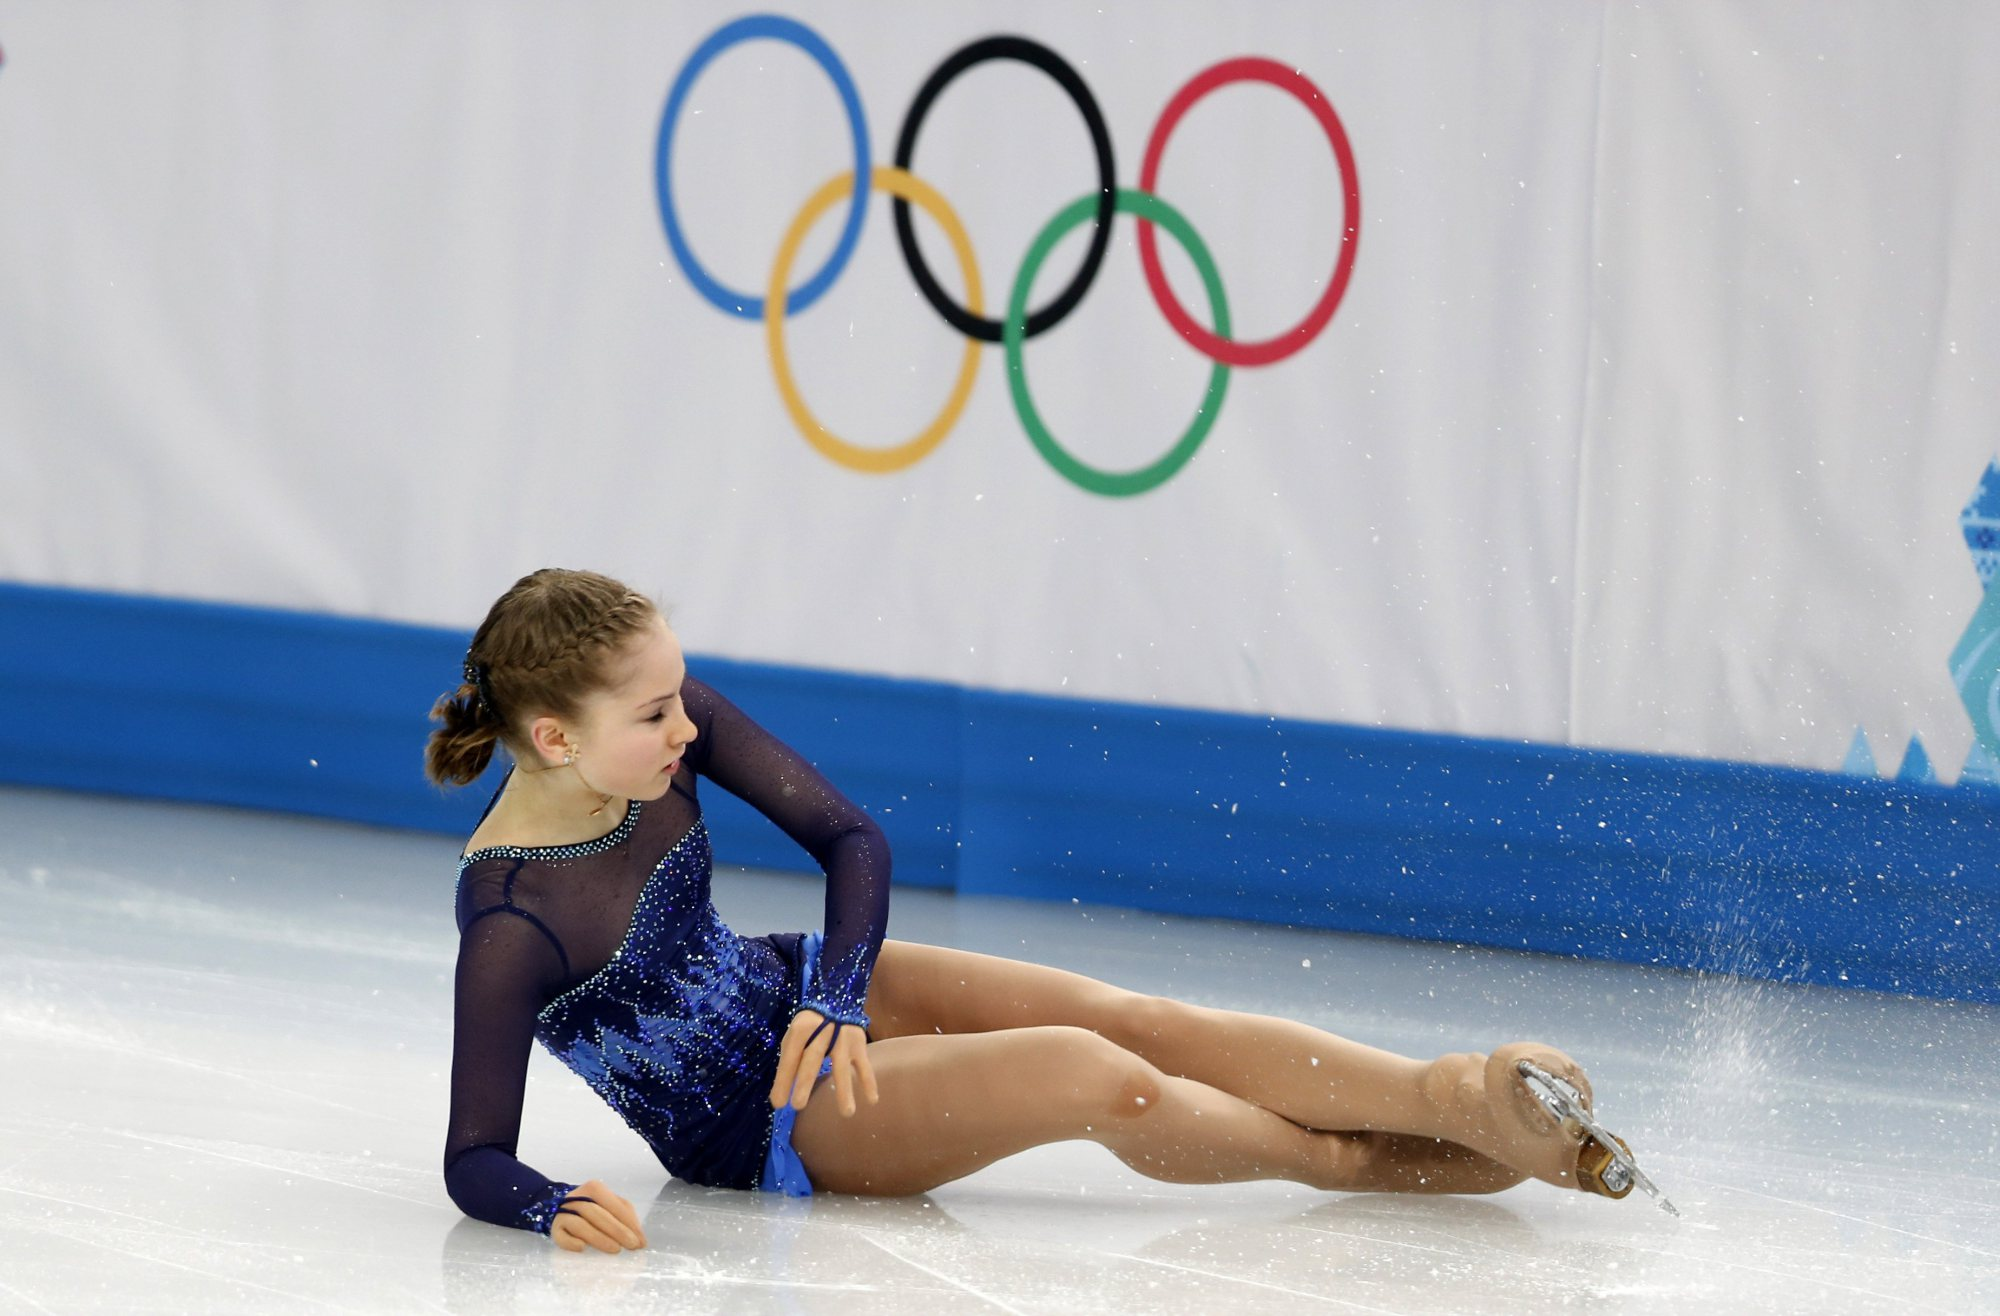 Russia's Yulia Lipnitskaya loses her balance during the ladies short program of Figure Skating at the 2014 Sochi Winter Olympic Games, on Feb. 19, 2014.